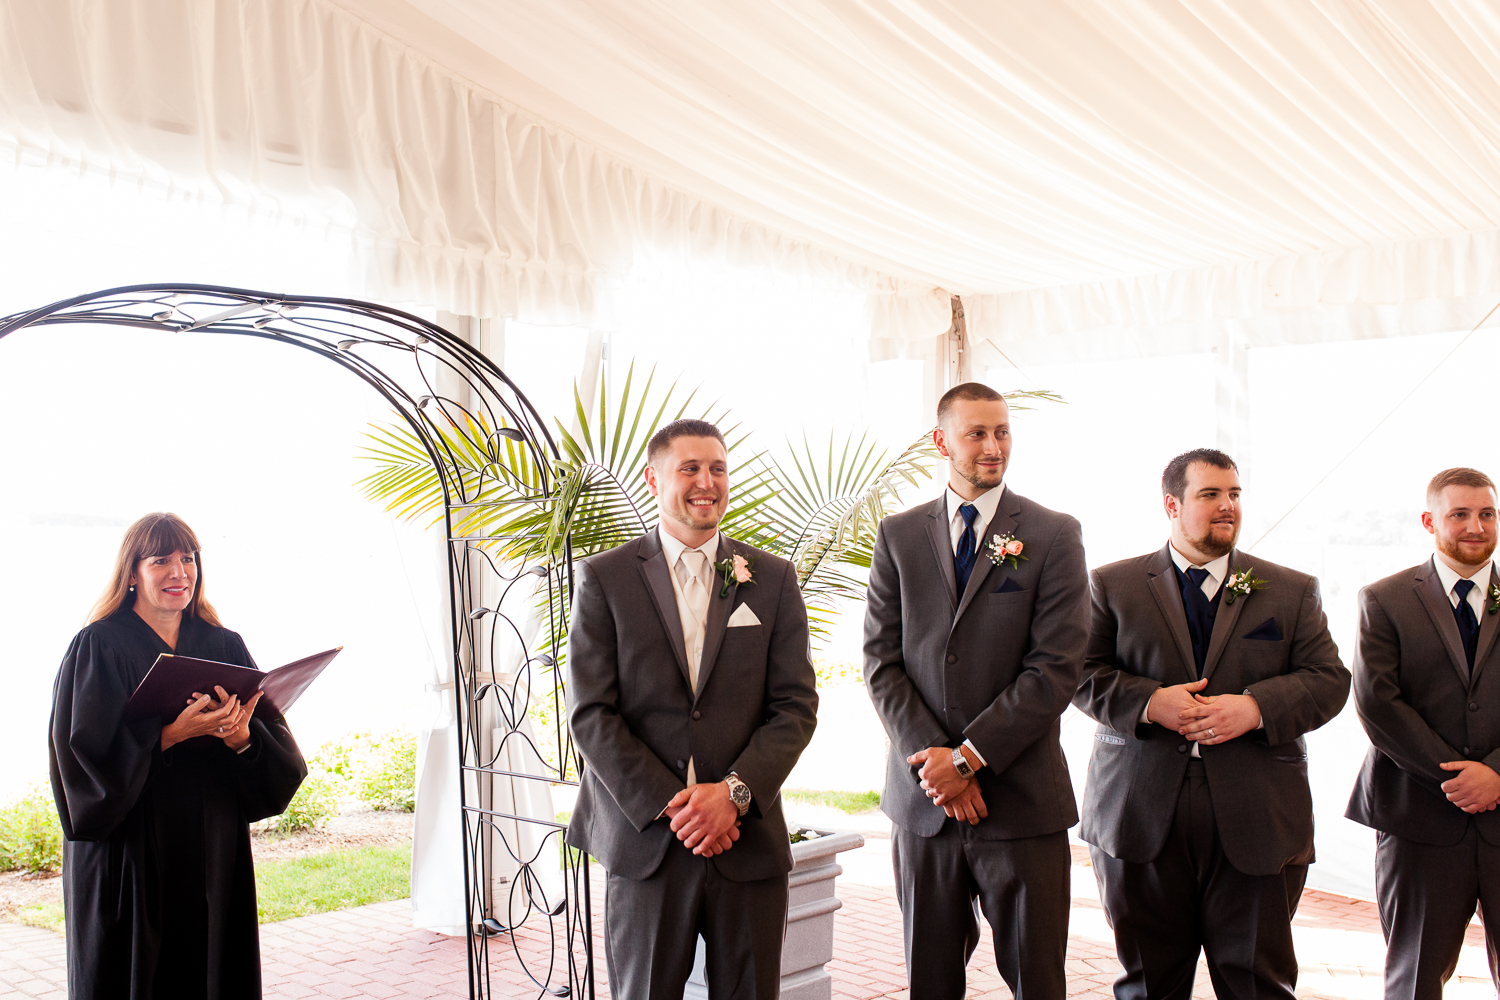 Groom gets emotional seeing his bride walk down the aisle.